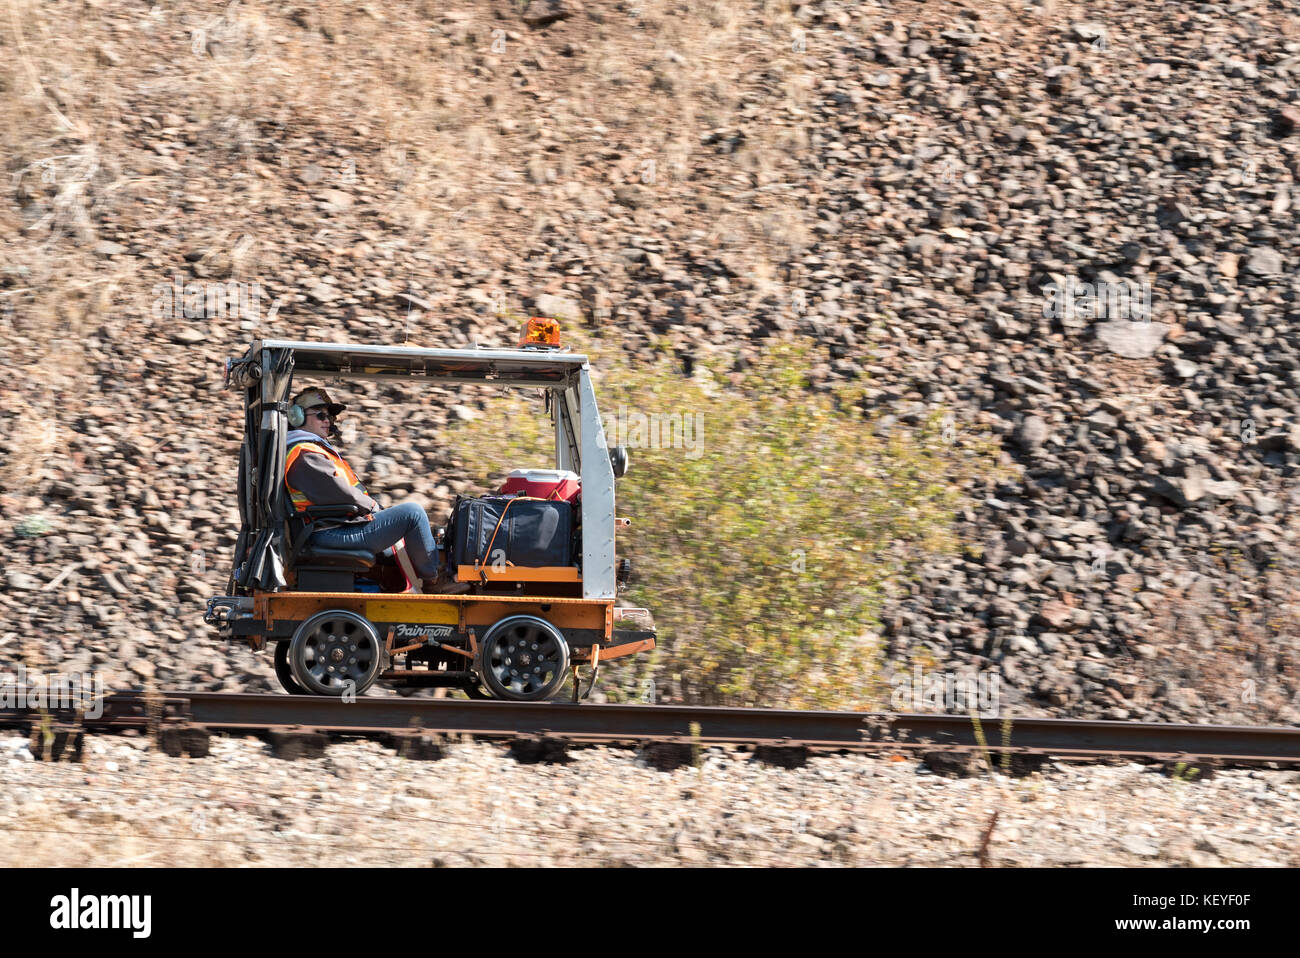 Touring on the Union - Wallowa Railroad in Northeast Oregon in a speeder (also known as railway motor car, putt - Stock Image